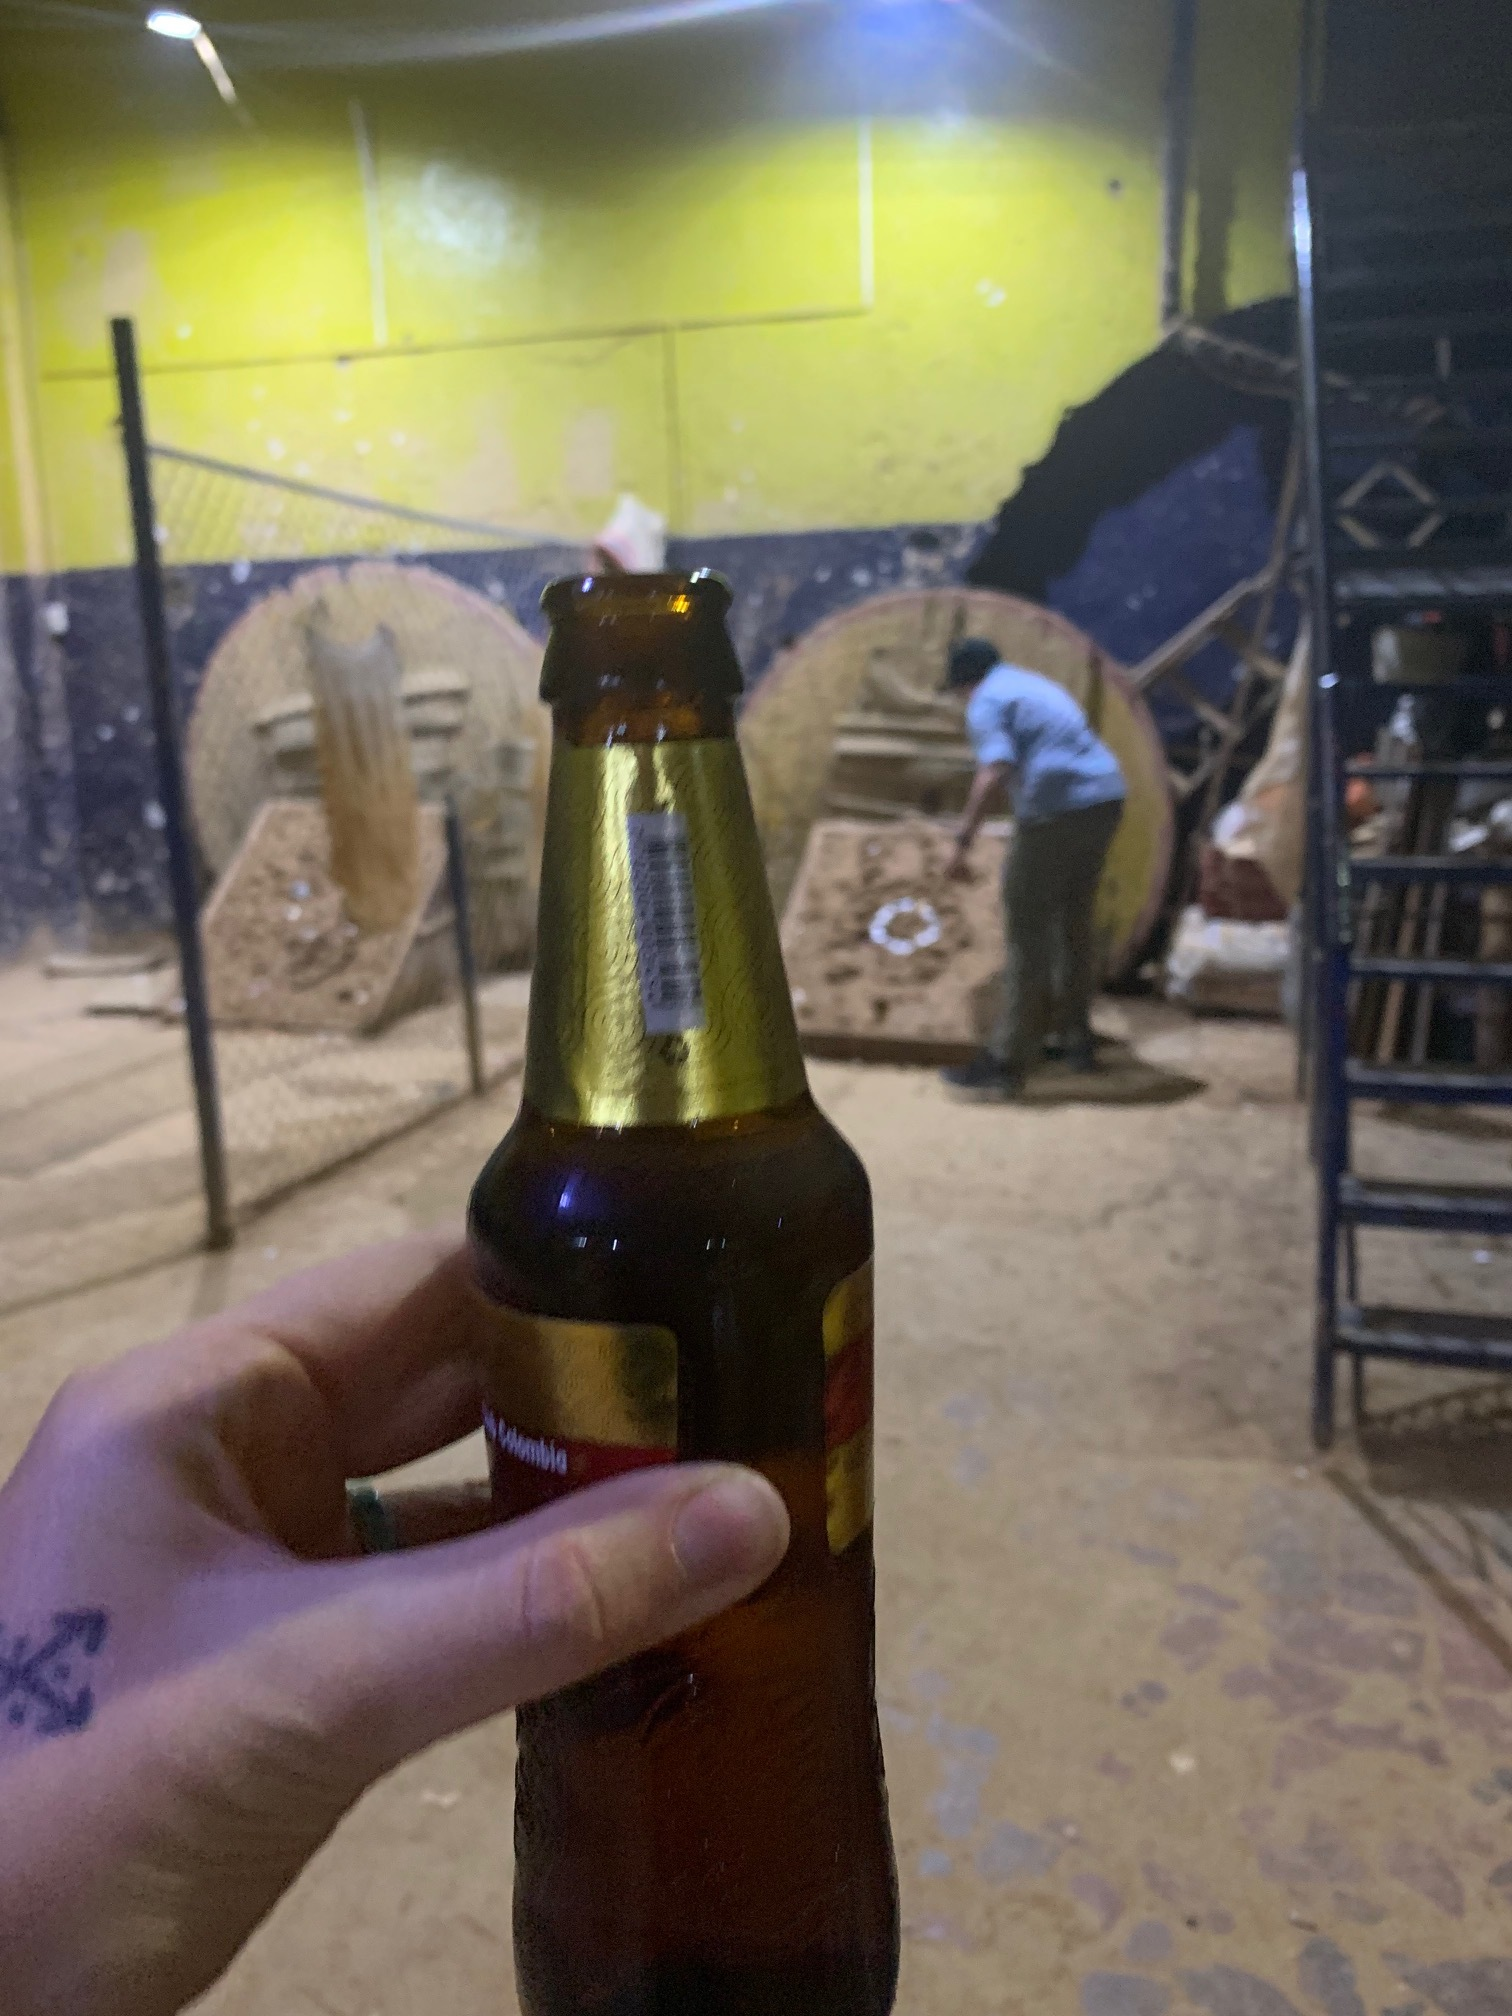 A must do is order a massive amount of beers and play tejo with all your friends for hours. It was nearly midnight so notice the several lack of people.